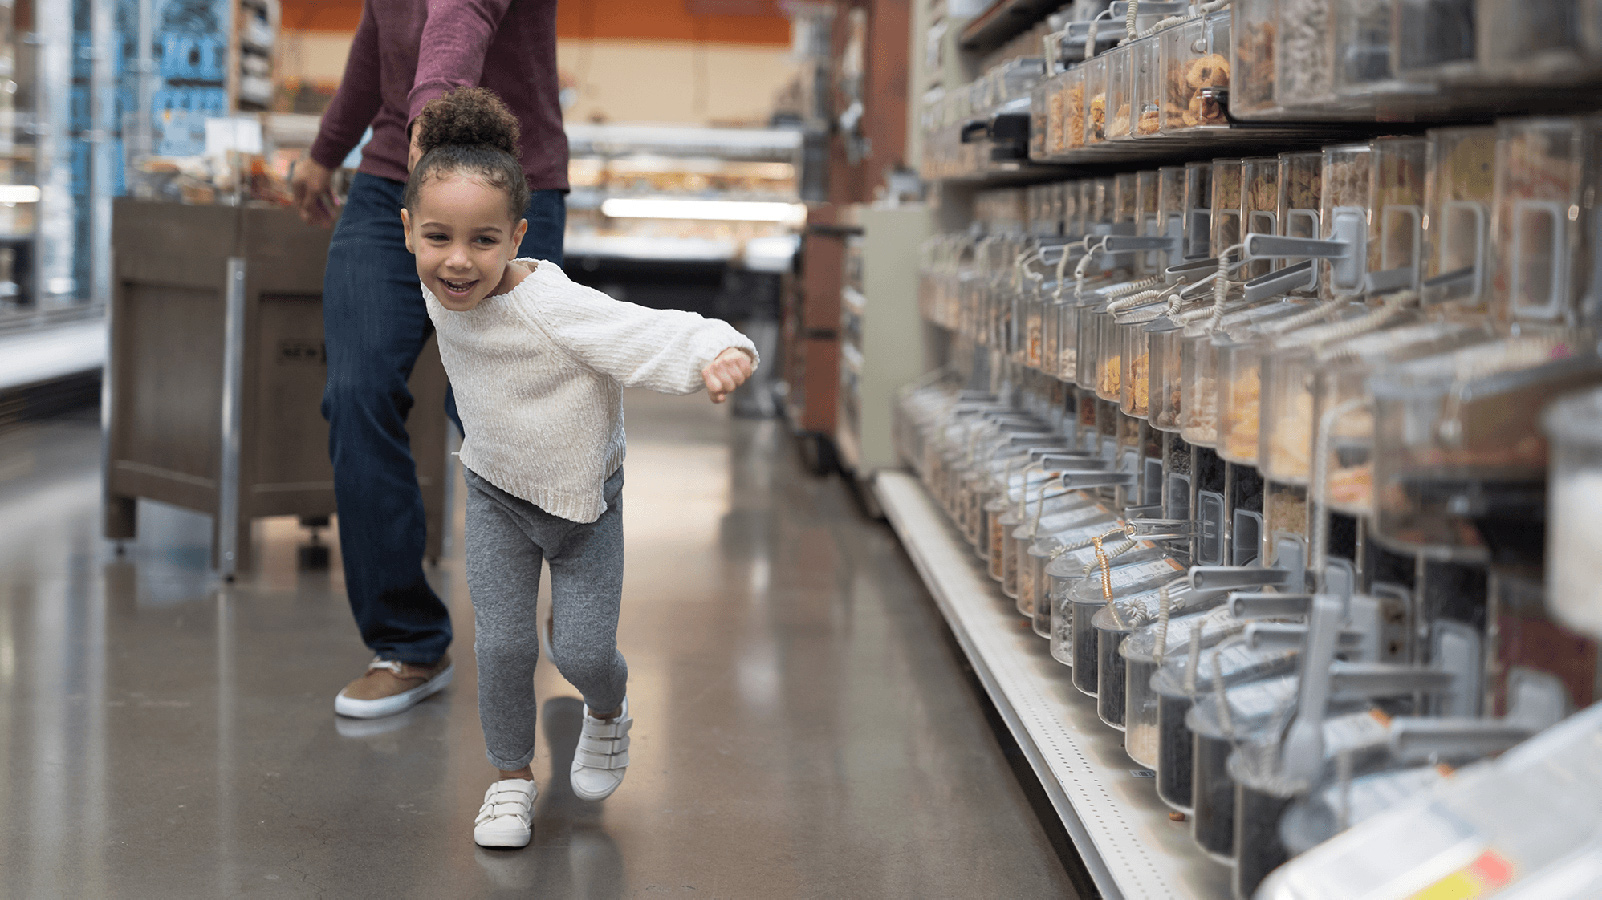 Little girl pulling her dad through a grocery store.